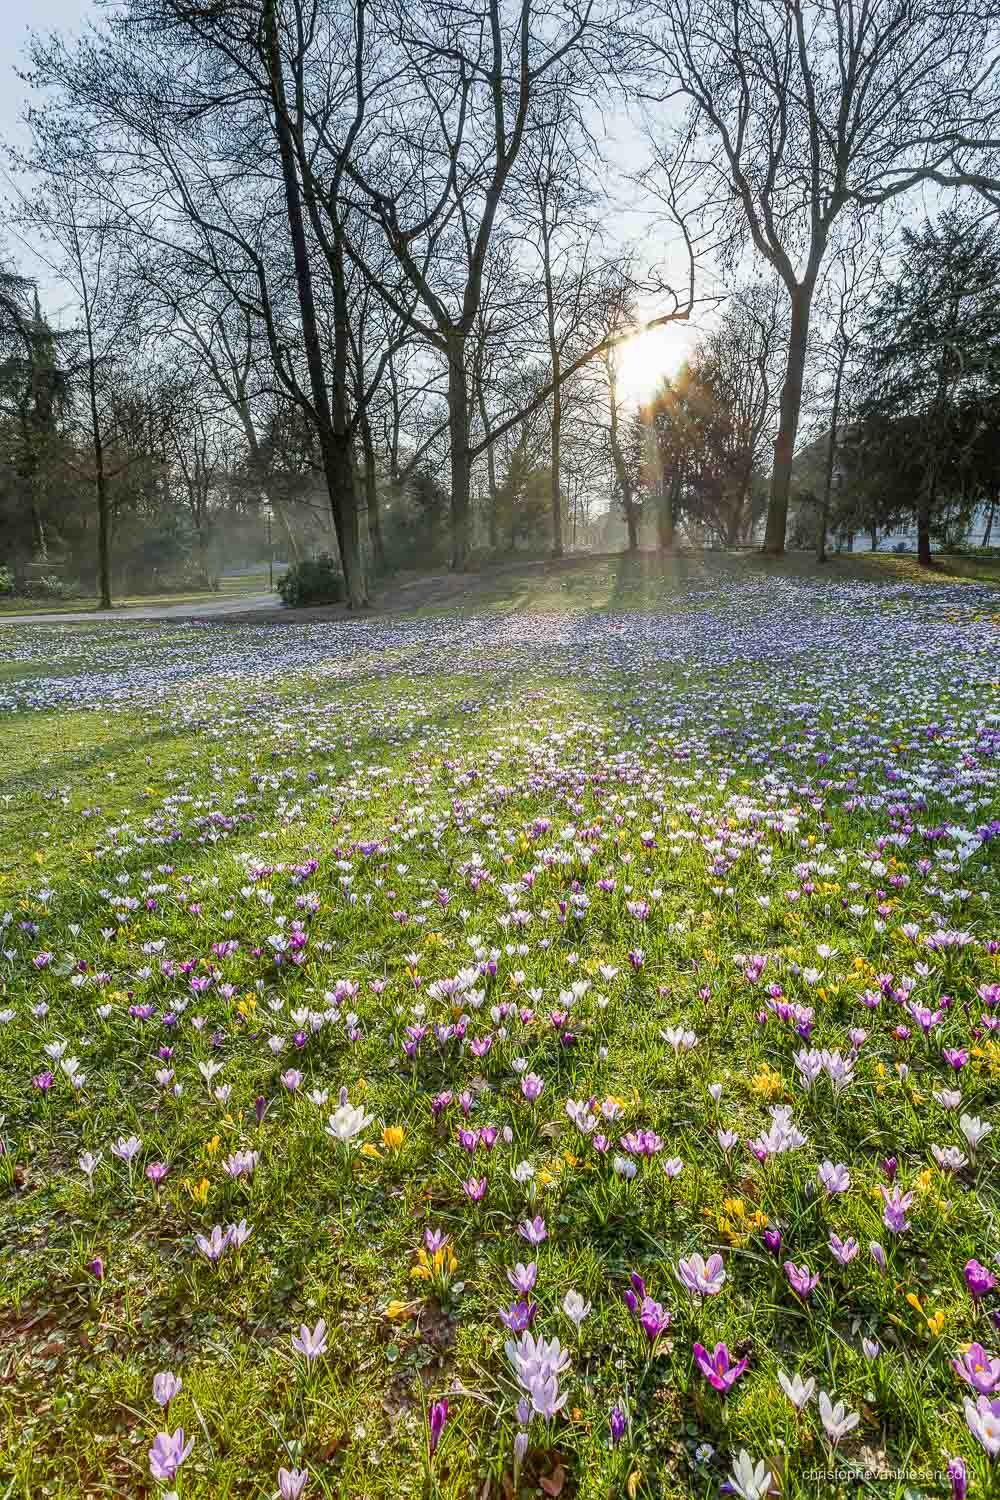 Spring in Luxembourg - The Edmund Klein municipal park in Luxembourg City during spring when crocus flowers pop up everywhere around the place - Nature Awakens